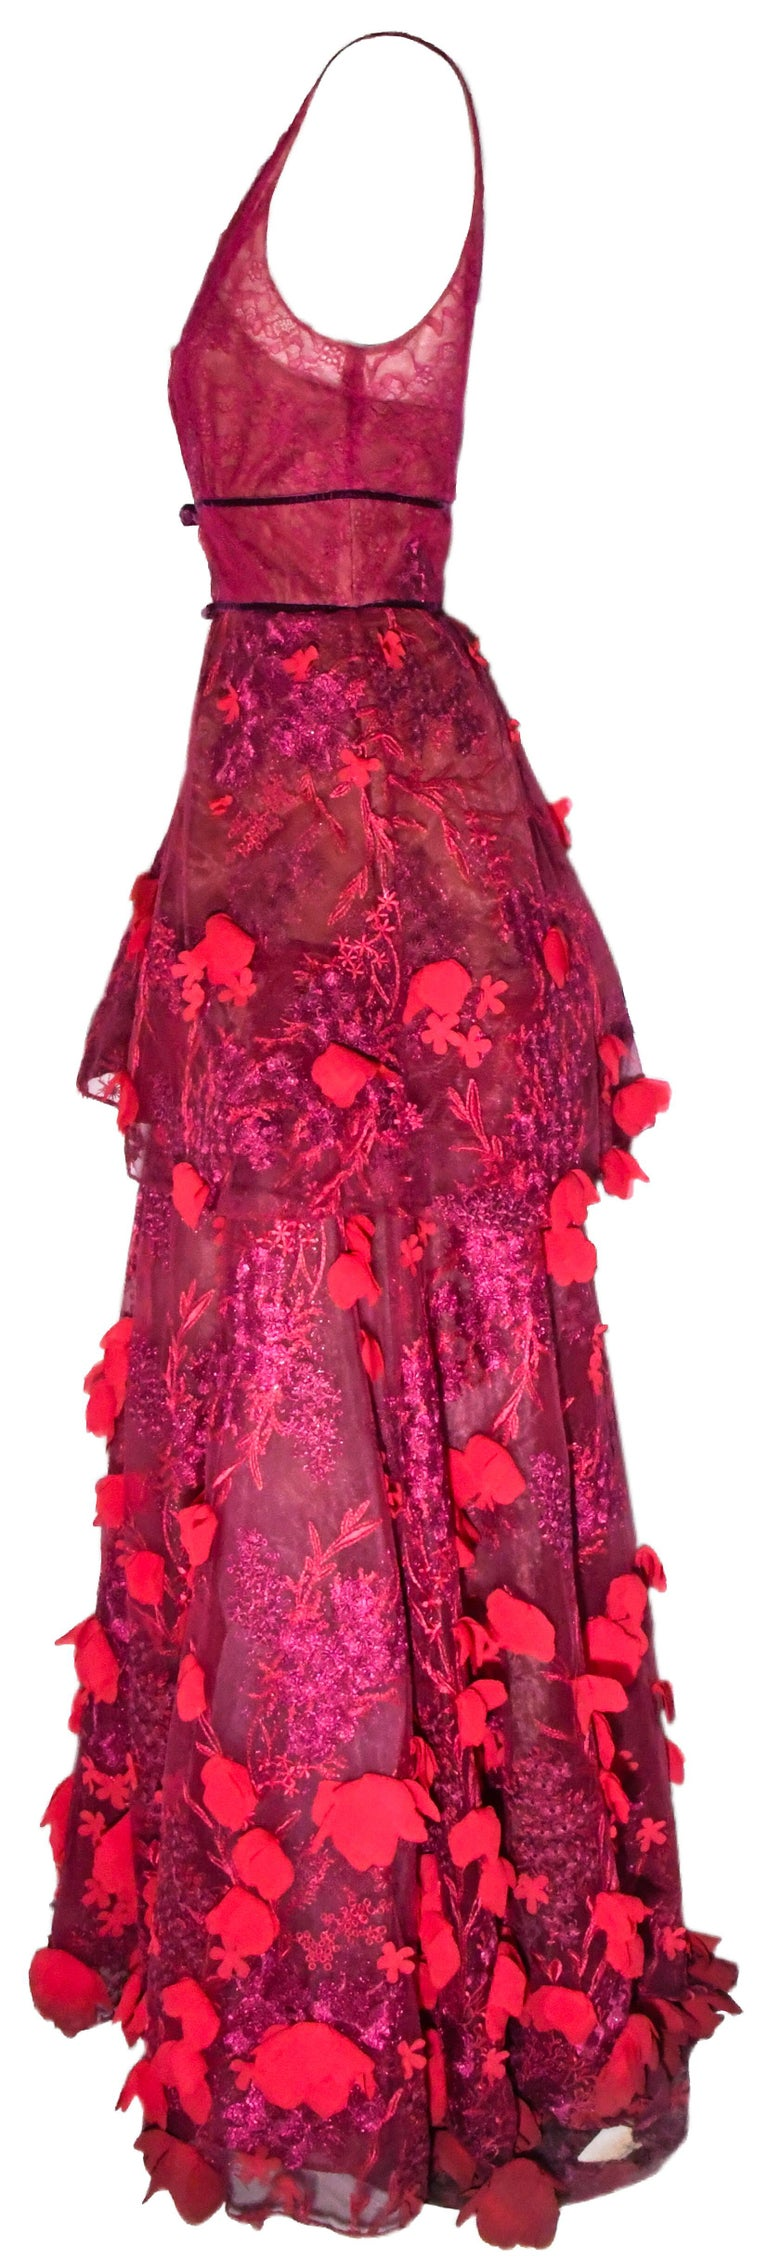 Marchesa Notte selection of couture evening gowns and cocktail dresses has become a firm favorite of  A listers on the red carpet thanks to show stopping embroidery and dazzling embellishments. Presented in a vibrant red tone, this V neck floral